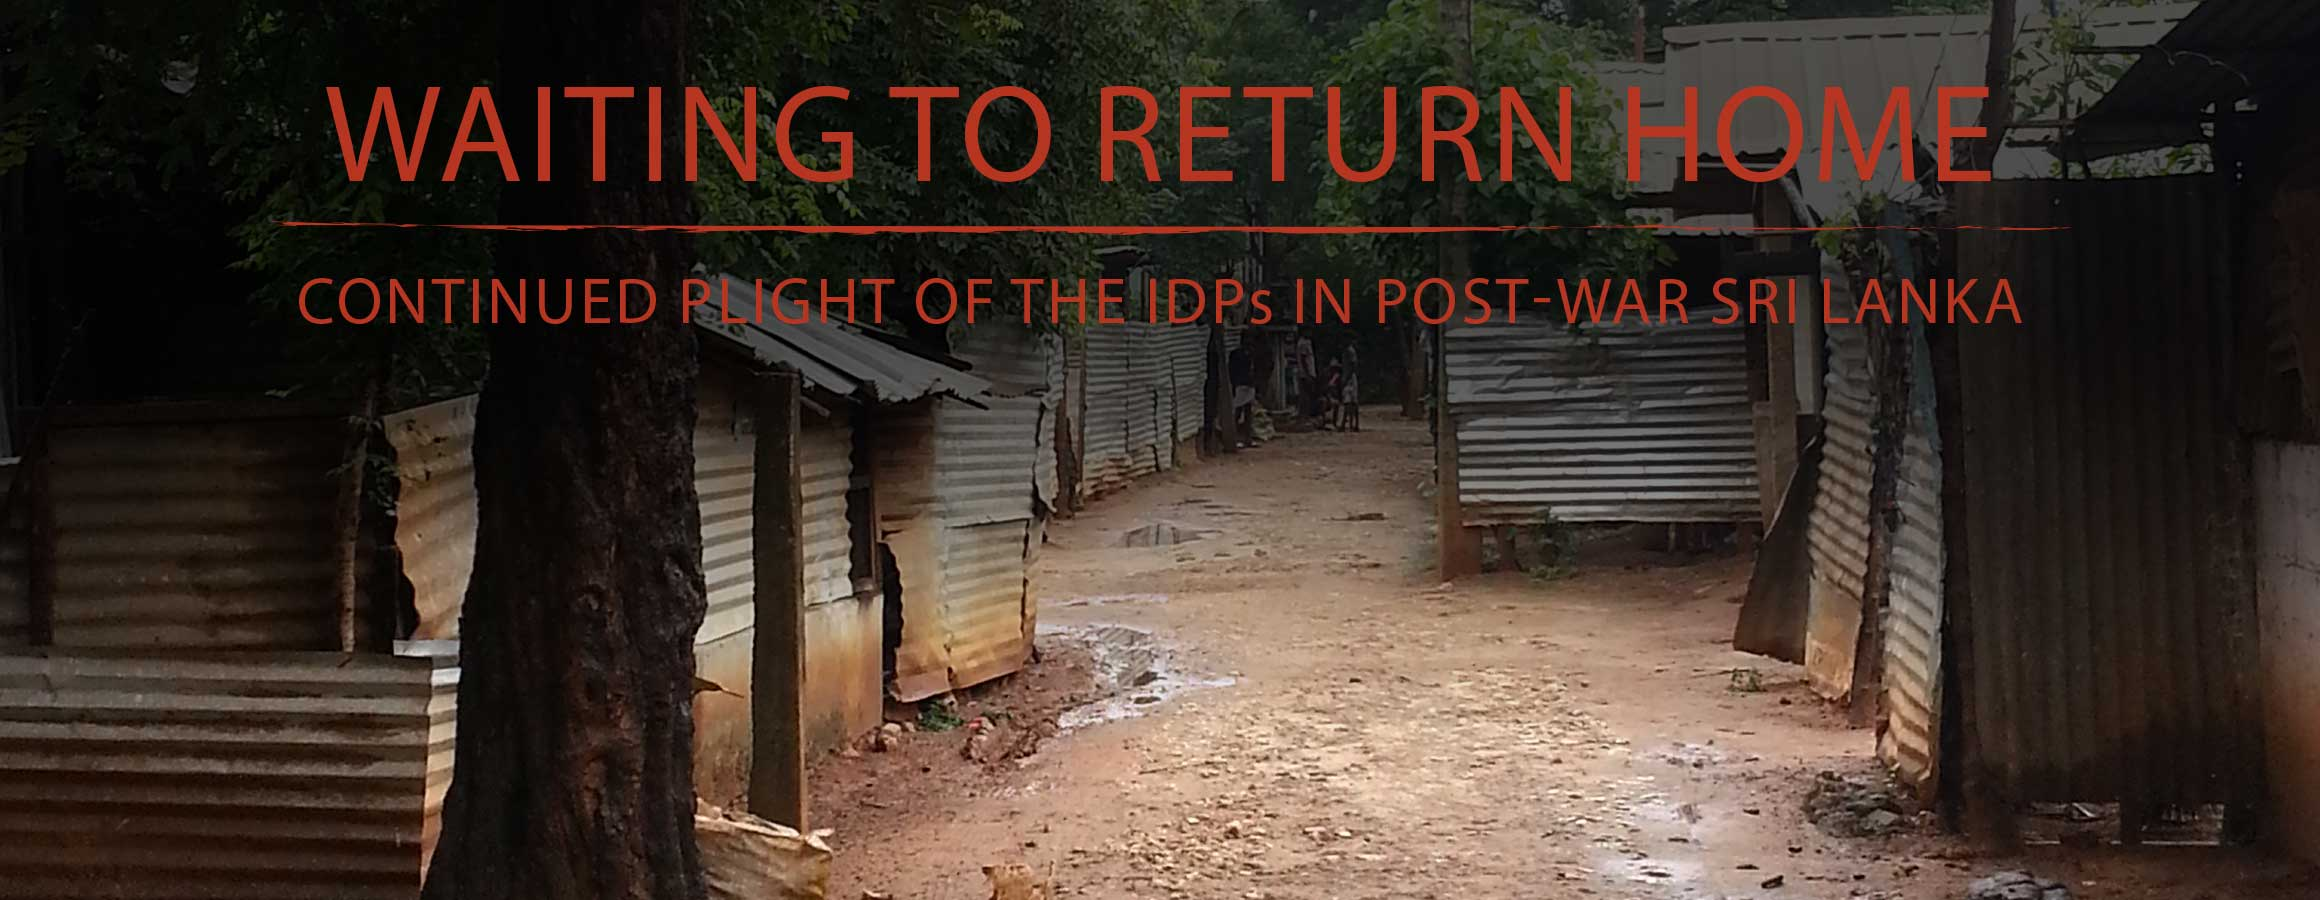 Waiting to Return Home Cover Slide